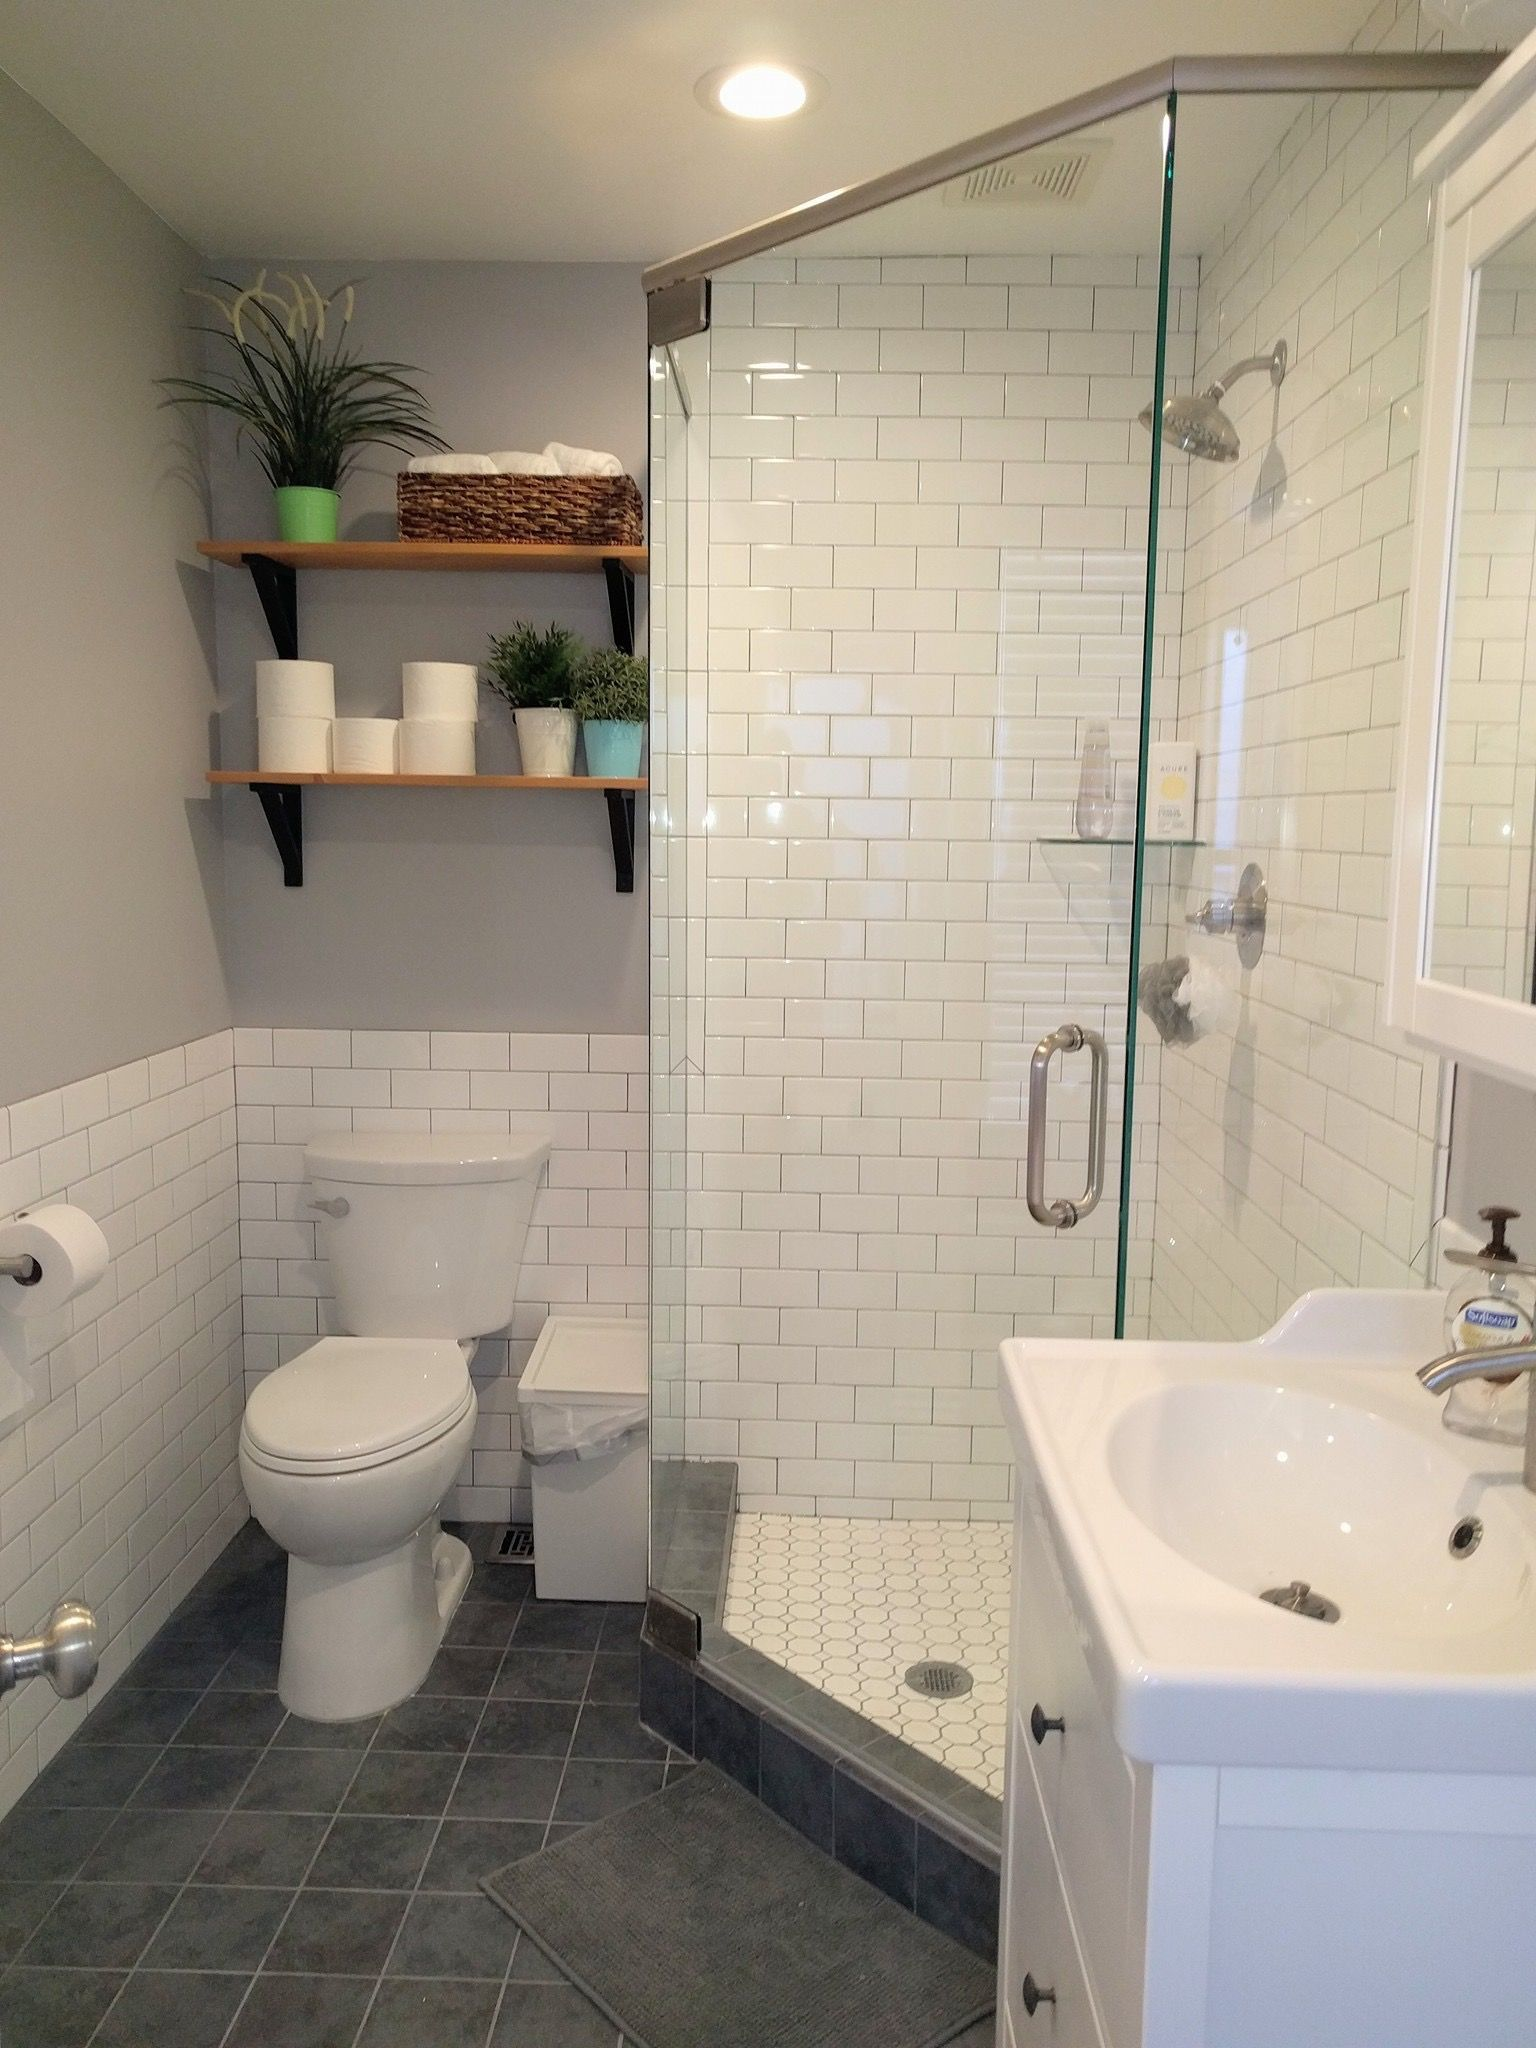 Small Bathroom Idea Master Bathroom Renovation Small Full Bathroom Bathrooms Remodel Bathroom idea pictures pictures